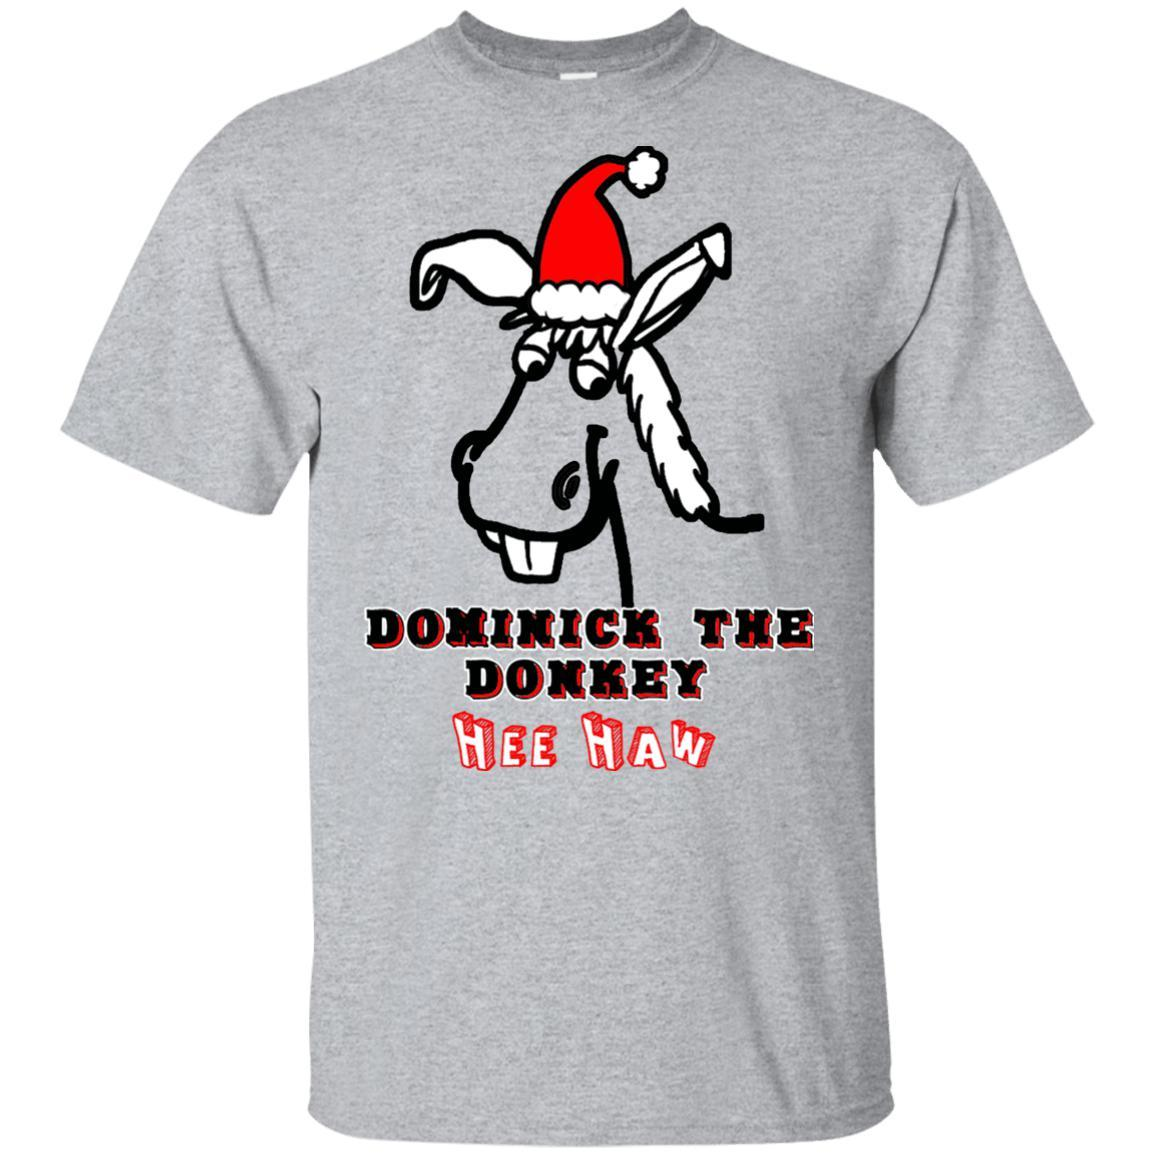 Dominick The Donkey Shirts Kids, Infants & Toddlers